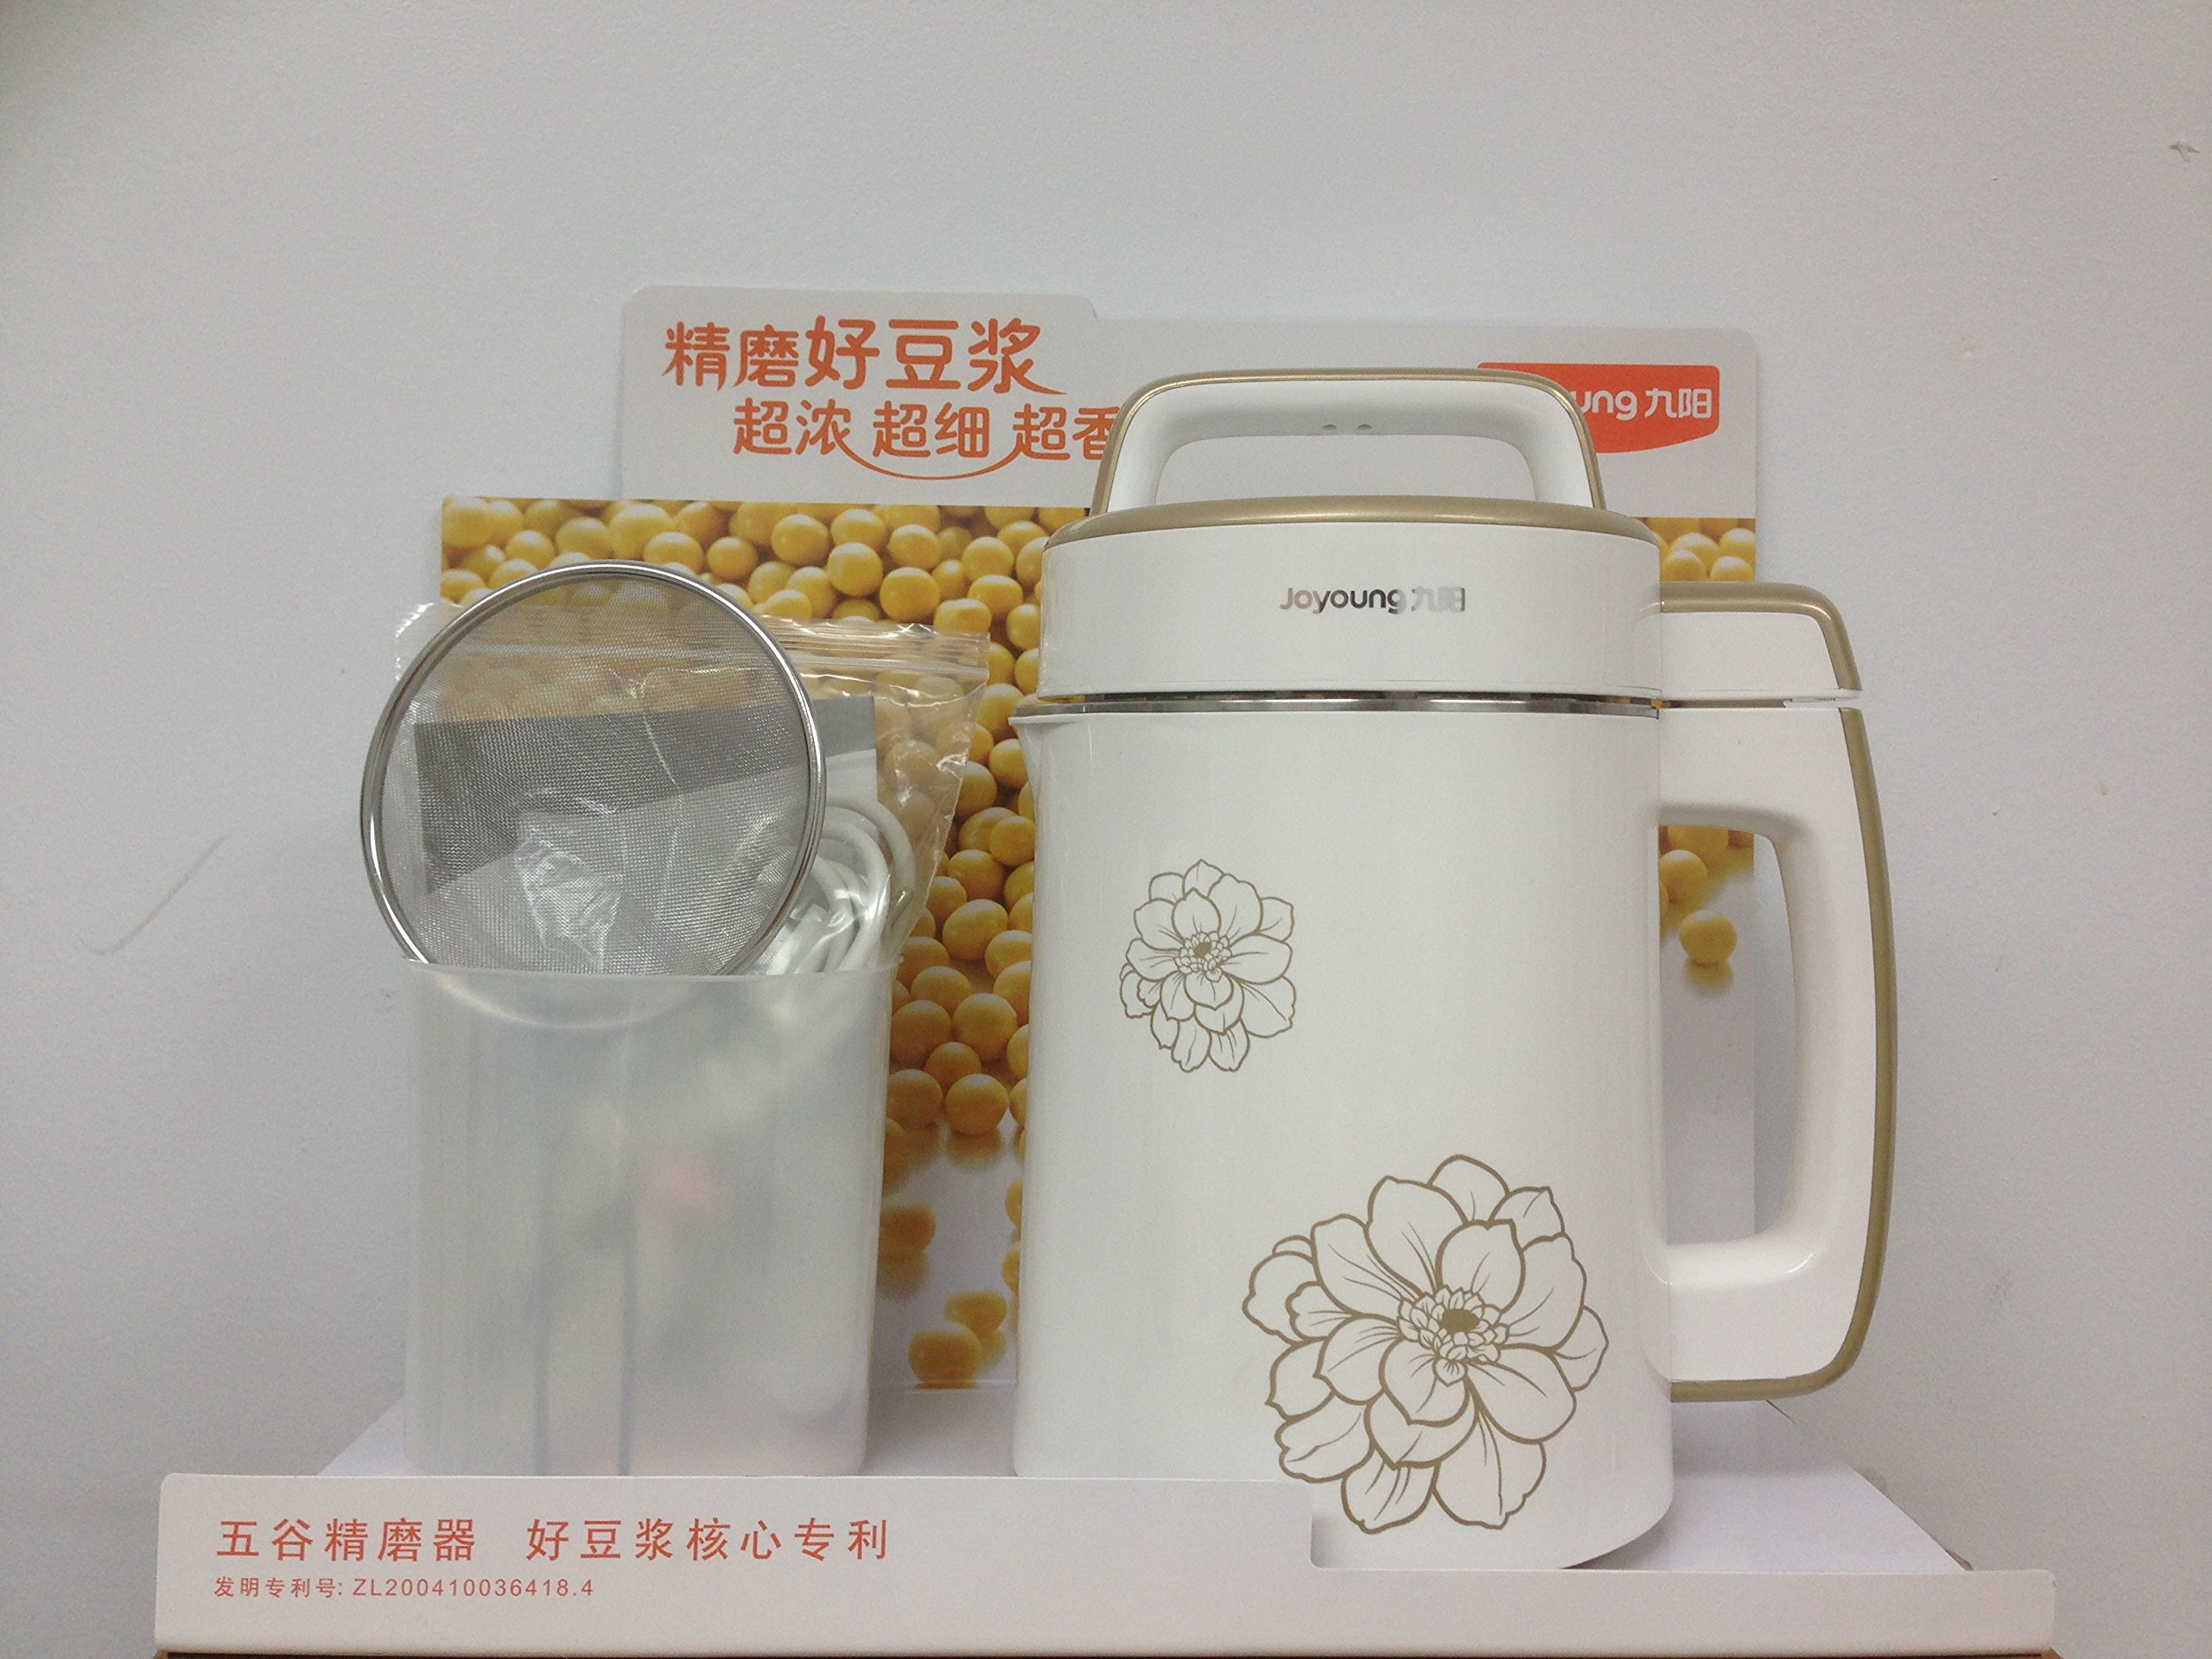 [Official] BONUS PACK! Joyoung CTS-2038 Easy-Clean Automatic Hot Soy Milk Maker (Full Stainless Steel & Large Capacity 1700ML) with FREE Soybean Bonus Pack by JOYOUNG (Image #4)